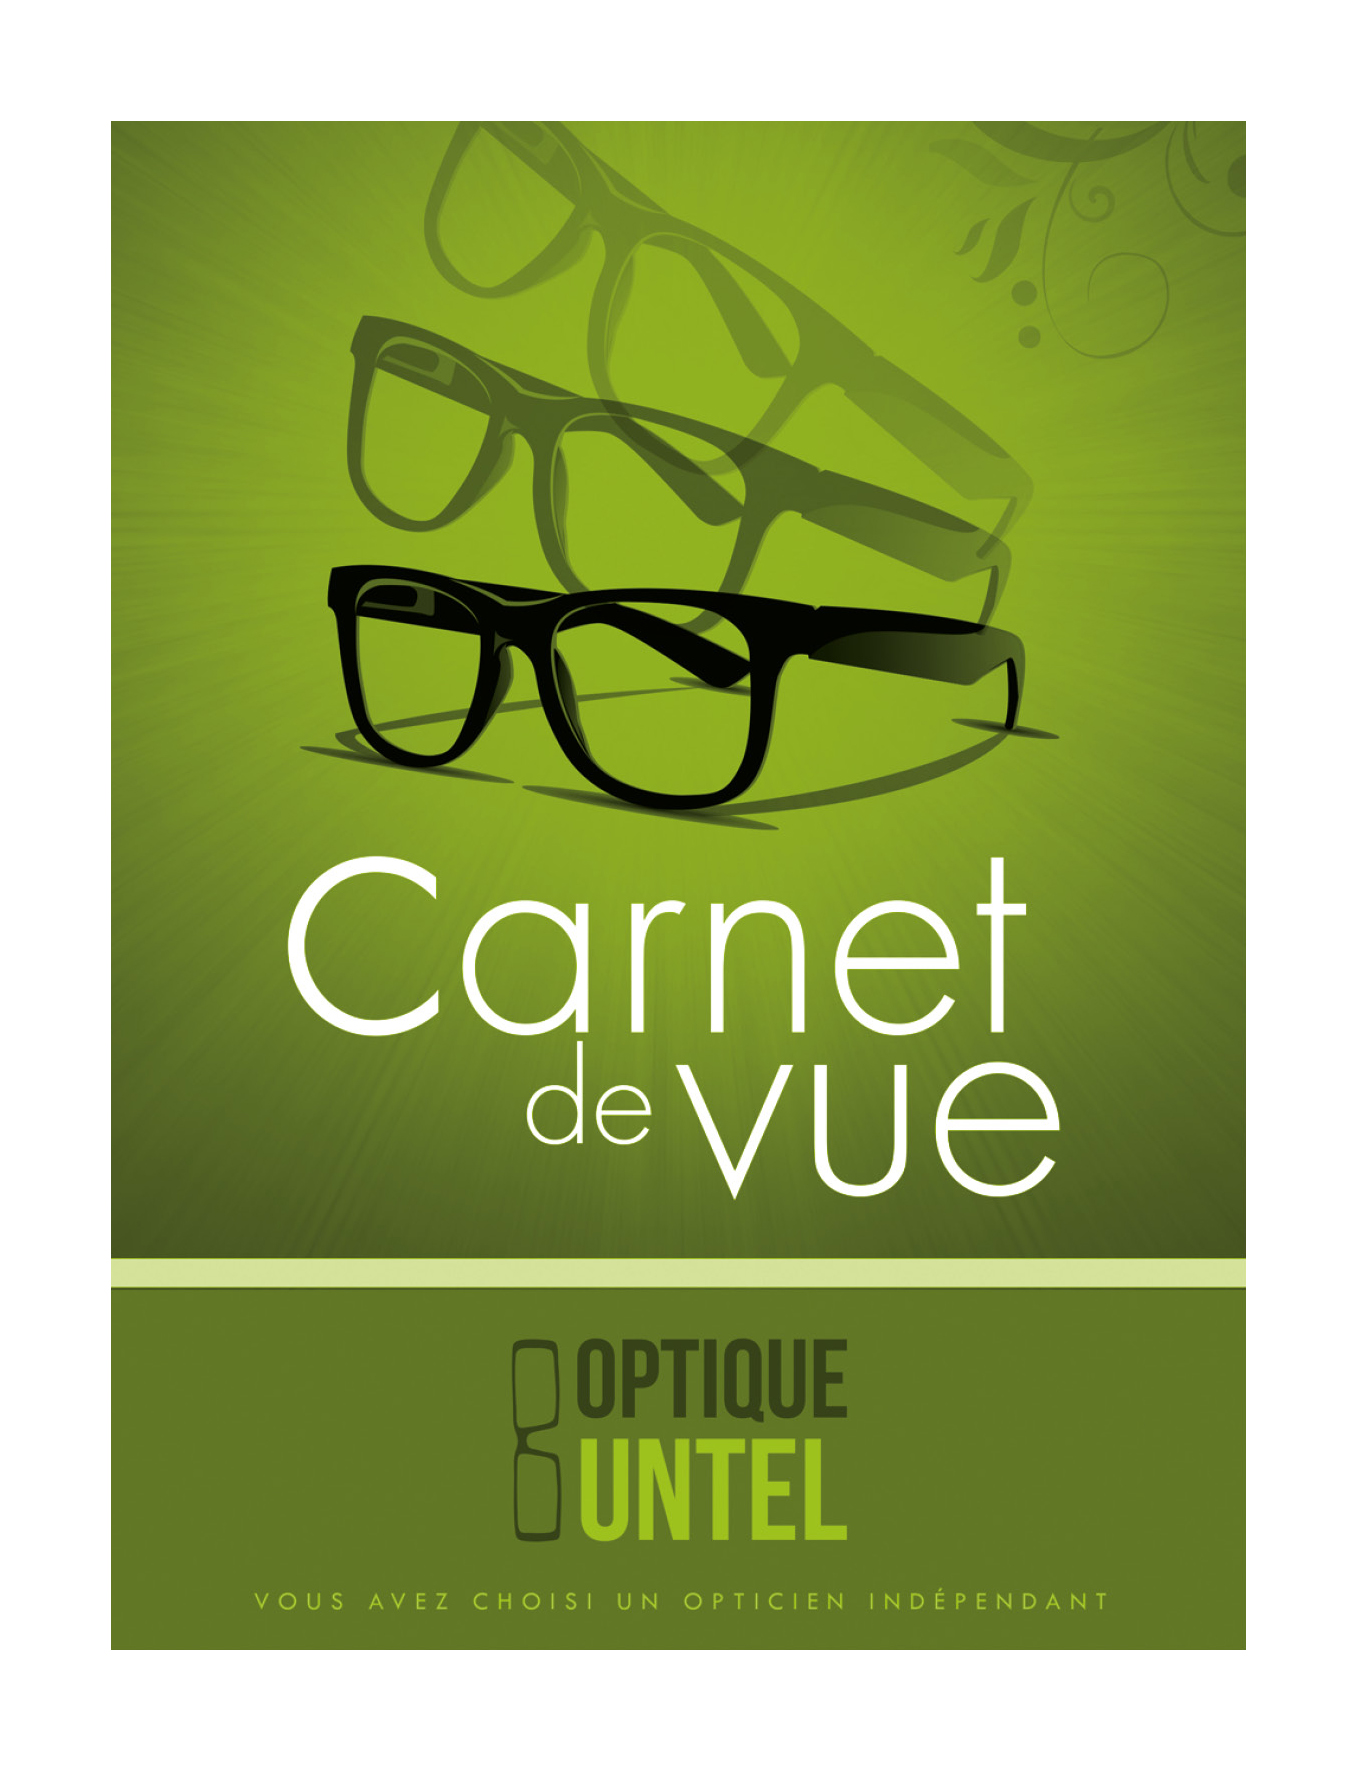 Carnet de vue Opticcom